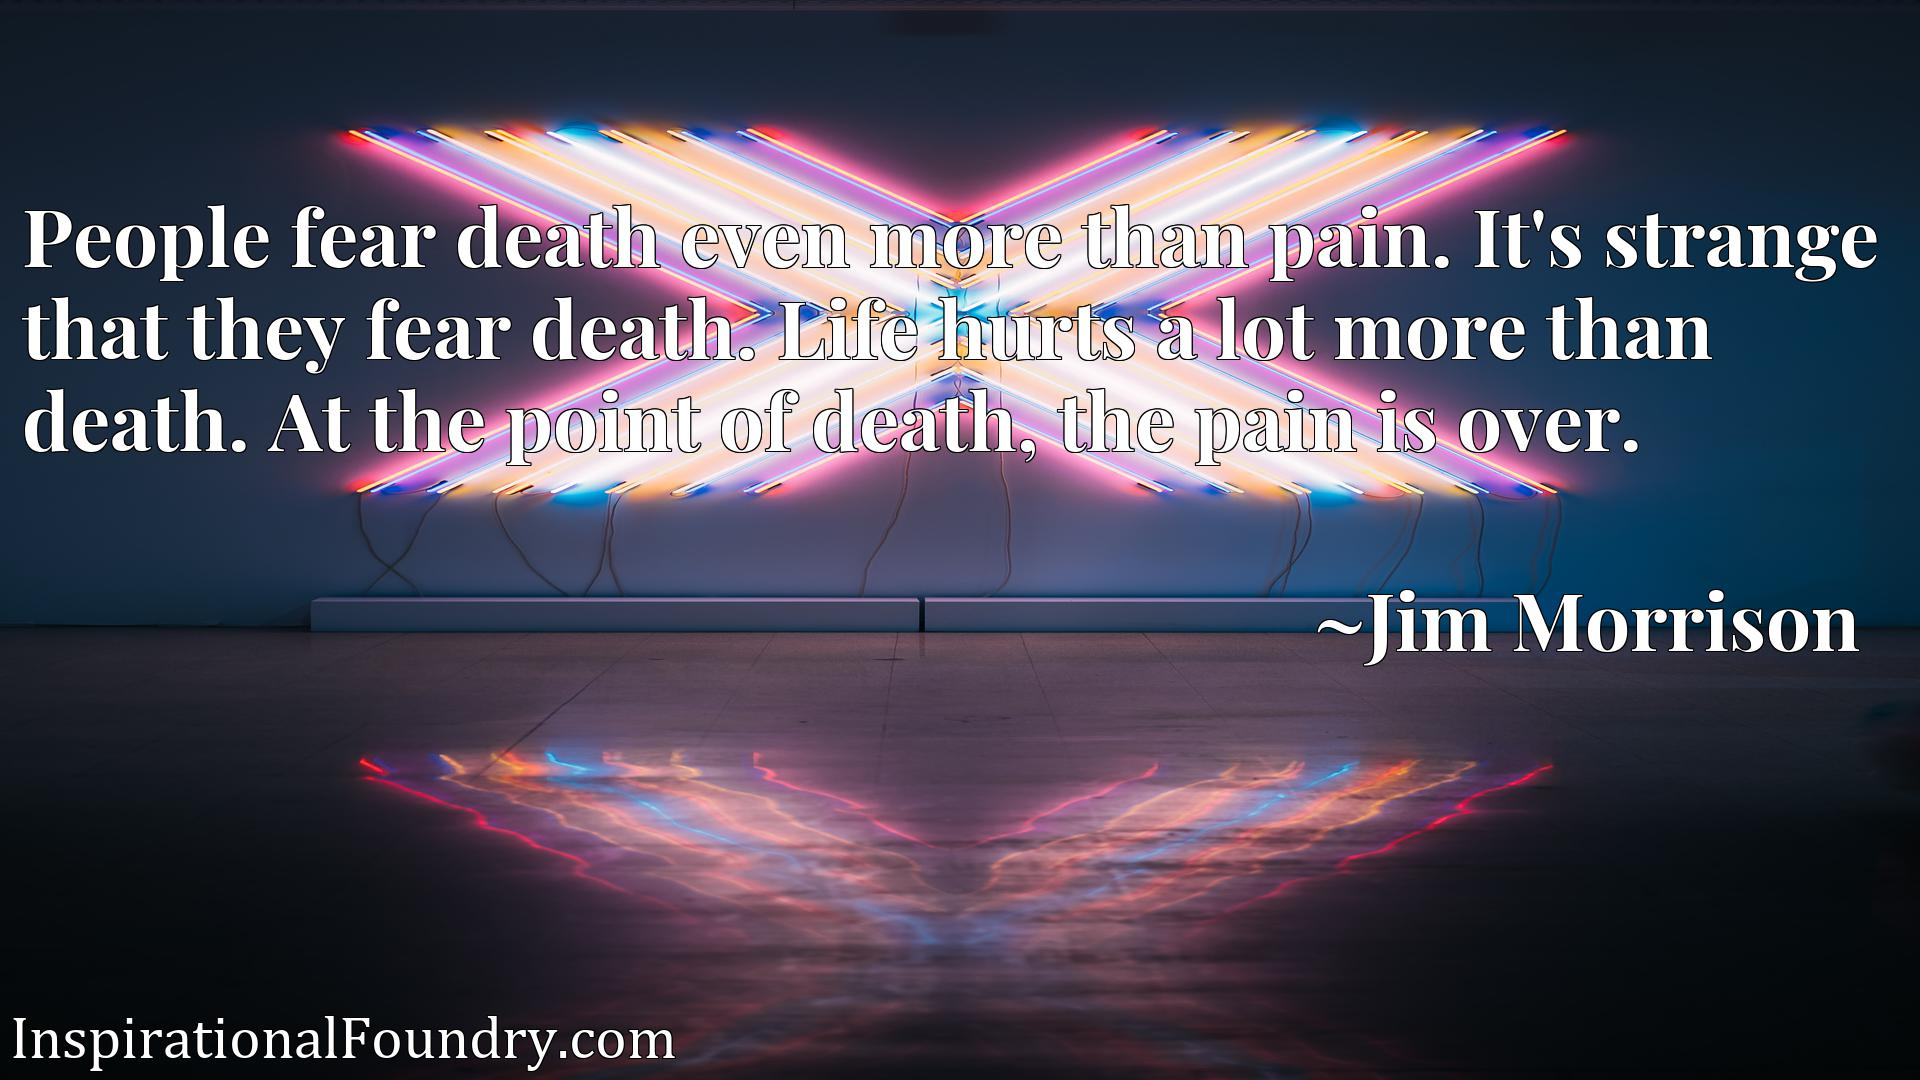 People fear death even more than pain. It's strange that they fear death. Life hurts a lot more than death. At the point of death, the pain is over.